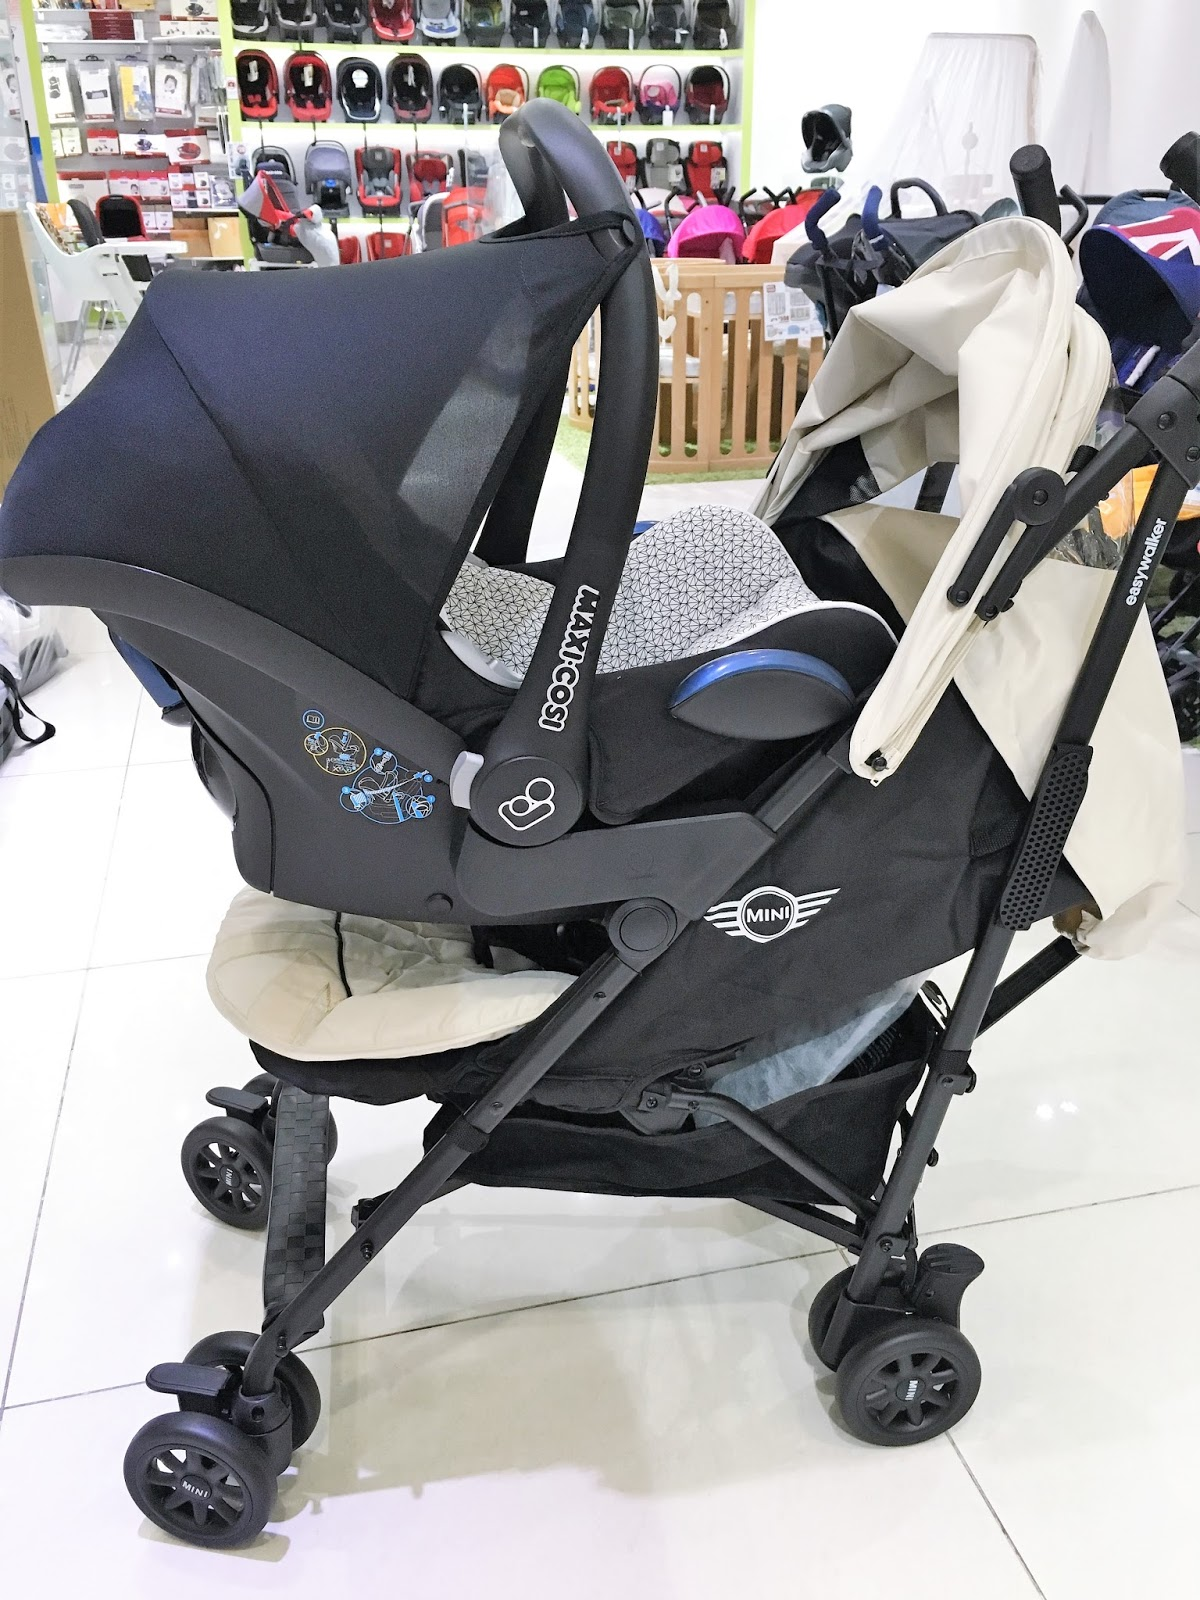 Car Seat Adapter For Stroller Vanny 39;s Telling Everything Baby Product Review